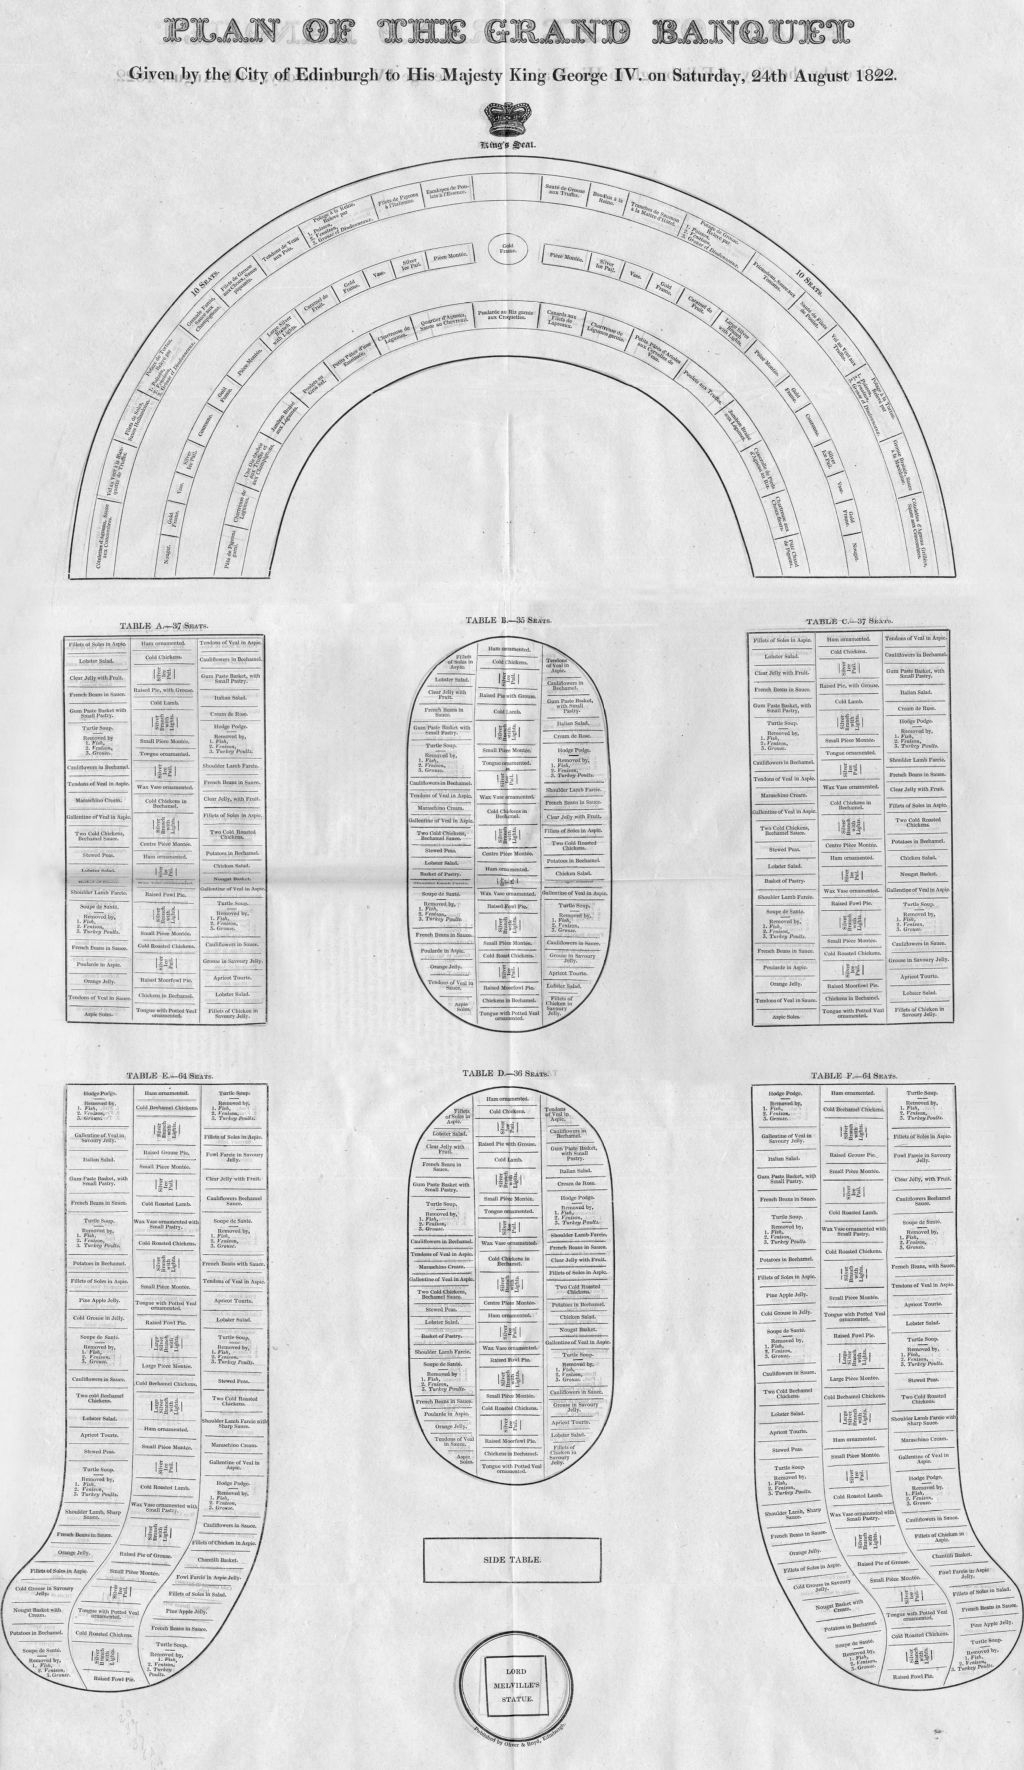 Plan of the Grand Banquet